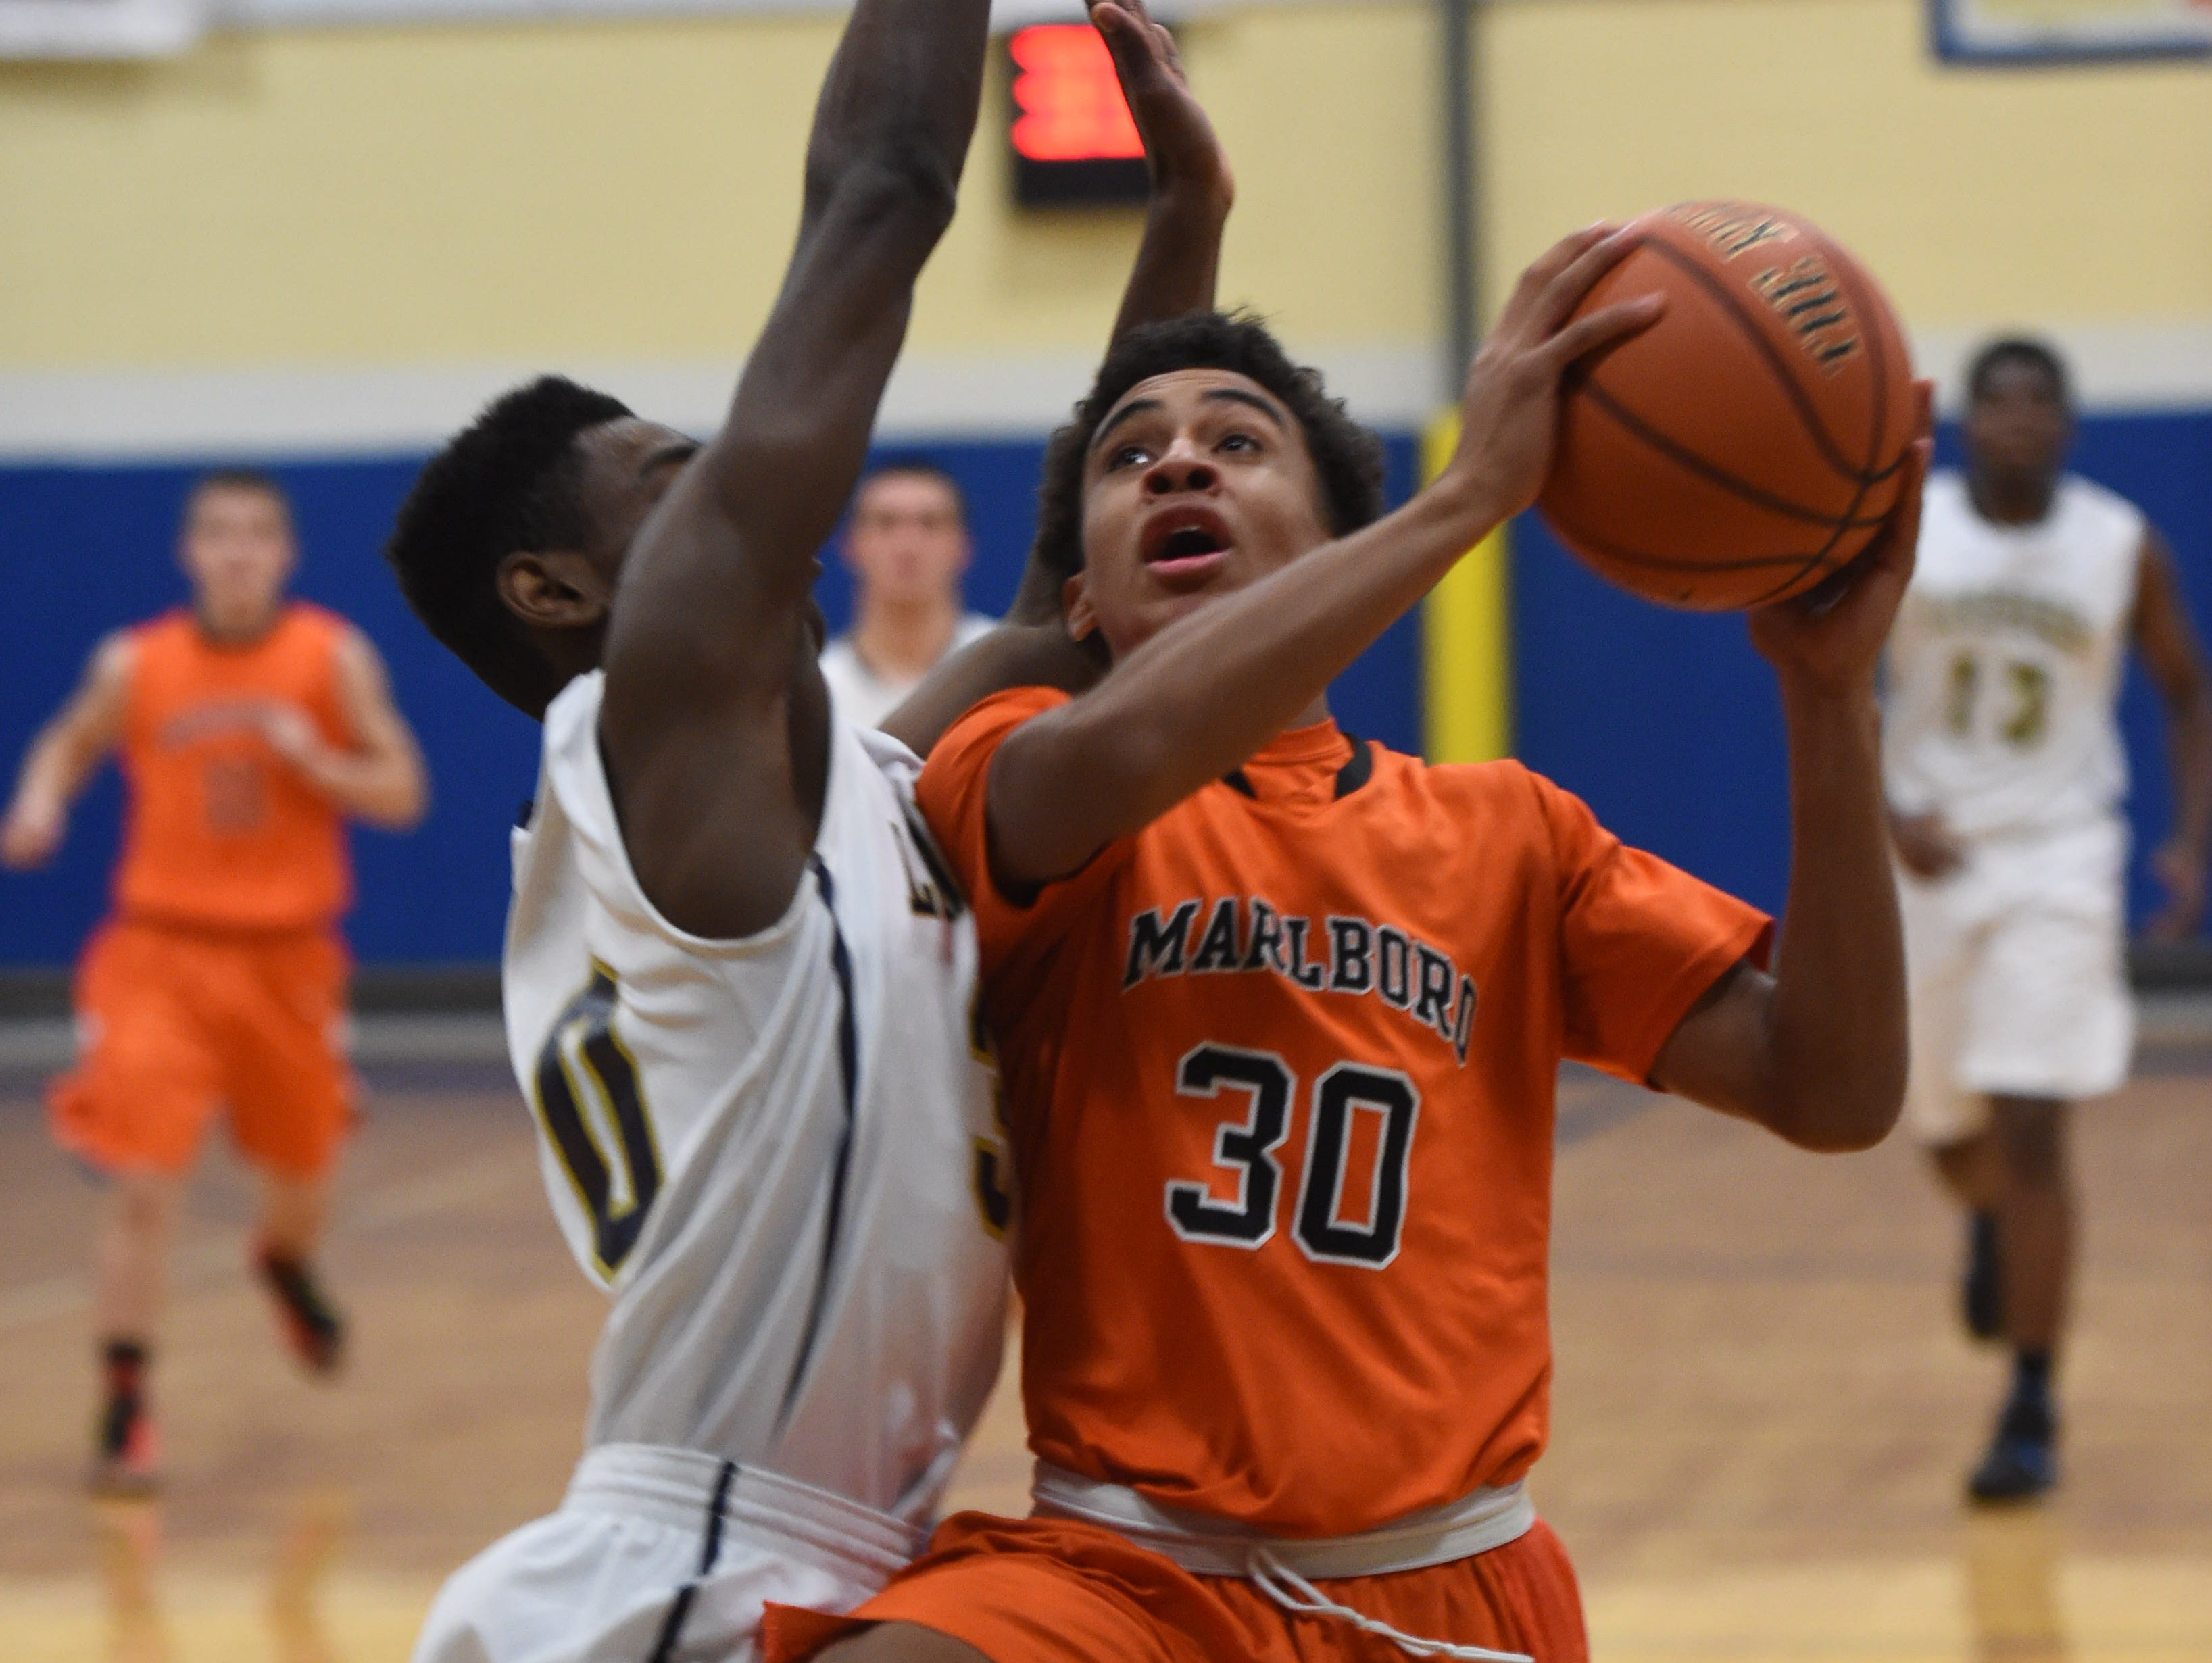 Marlboro High School's Jaiden Allen goes for a layup against Our Lady of Lourdes' Kevin Townes during the Duane Davis Memorial Holiday Tournament last December.